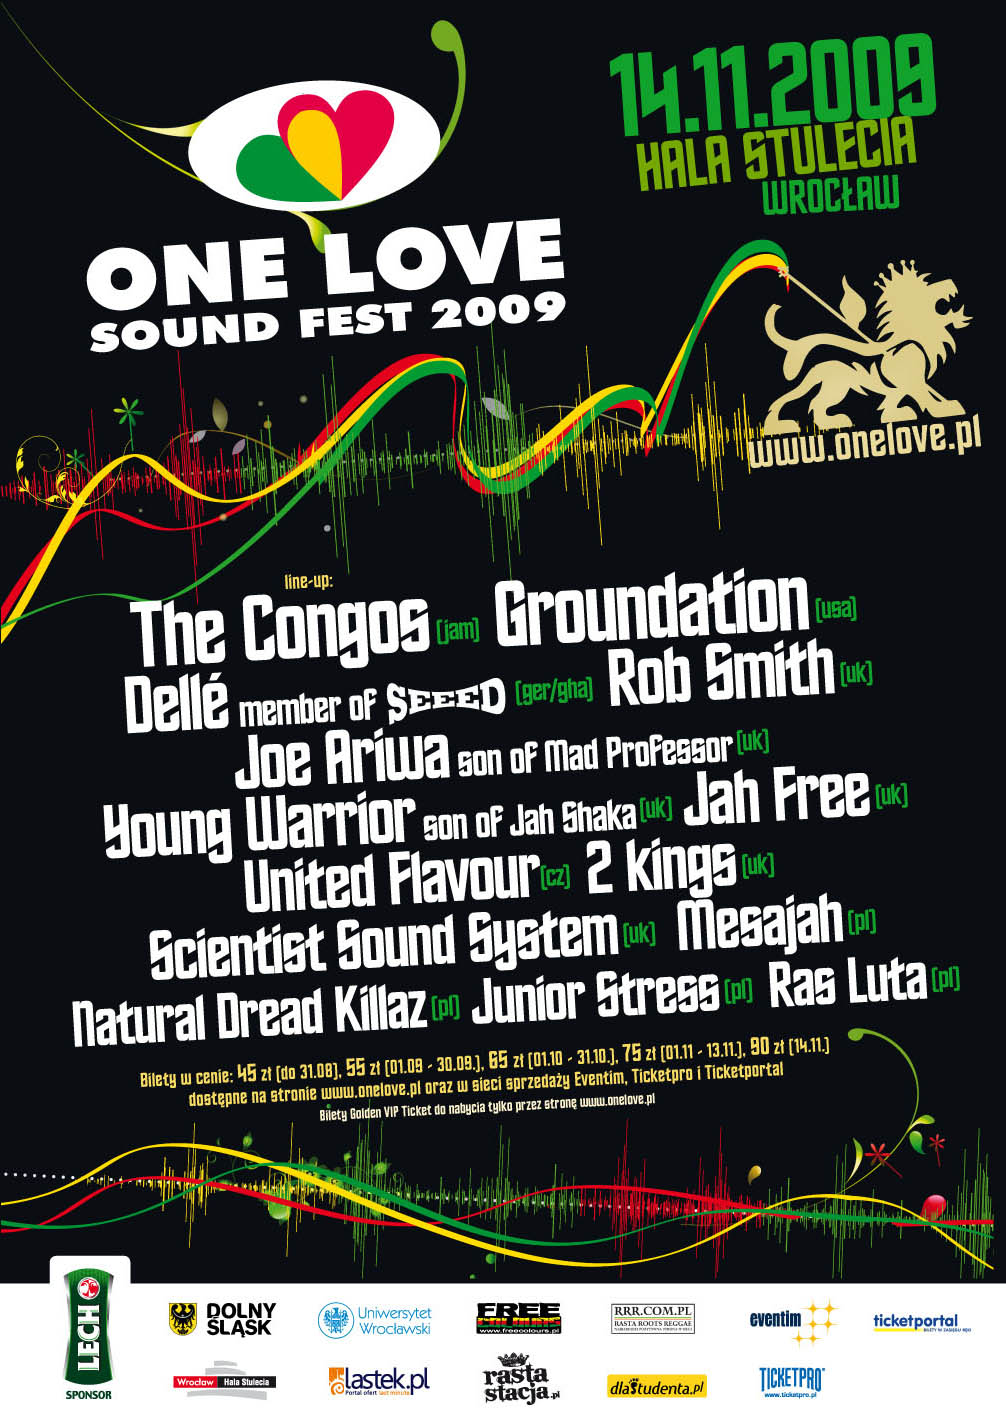 One Love Sound Fest 2009